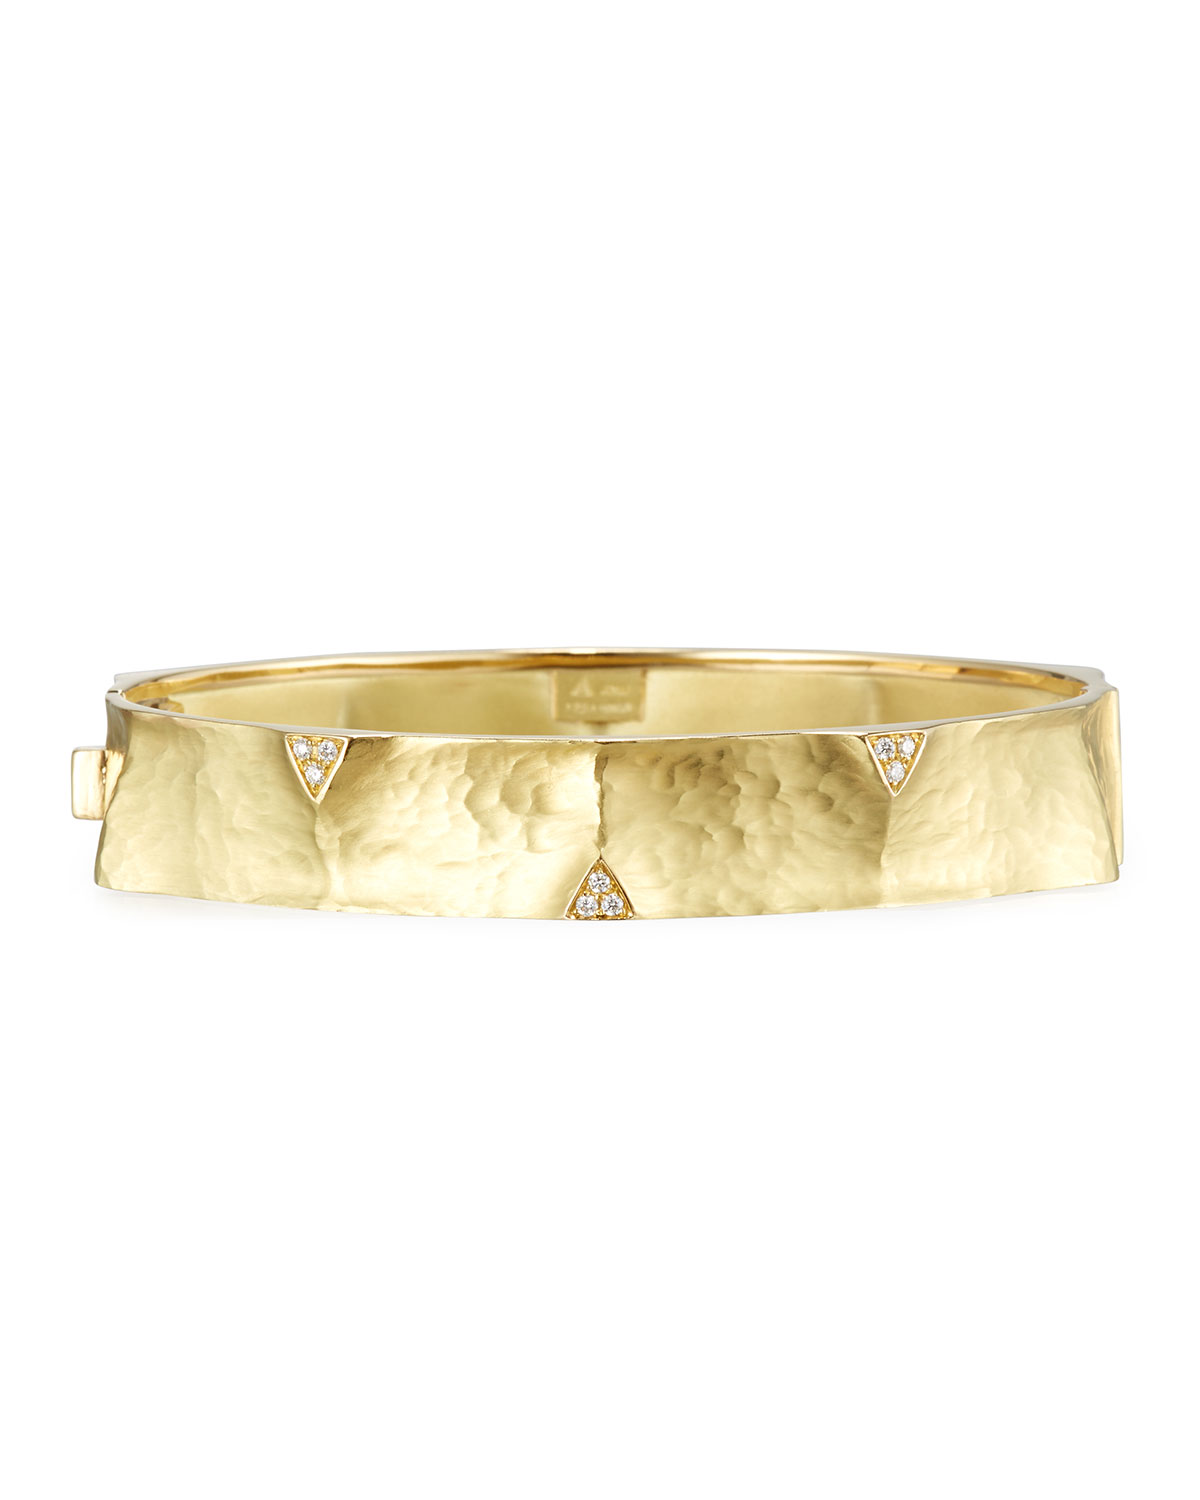 VENDORAFA HAMMERED 18K GOLD BANGLE WITH DIAMOND TRIANGLES